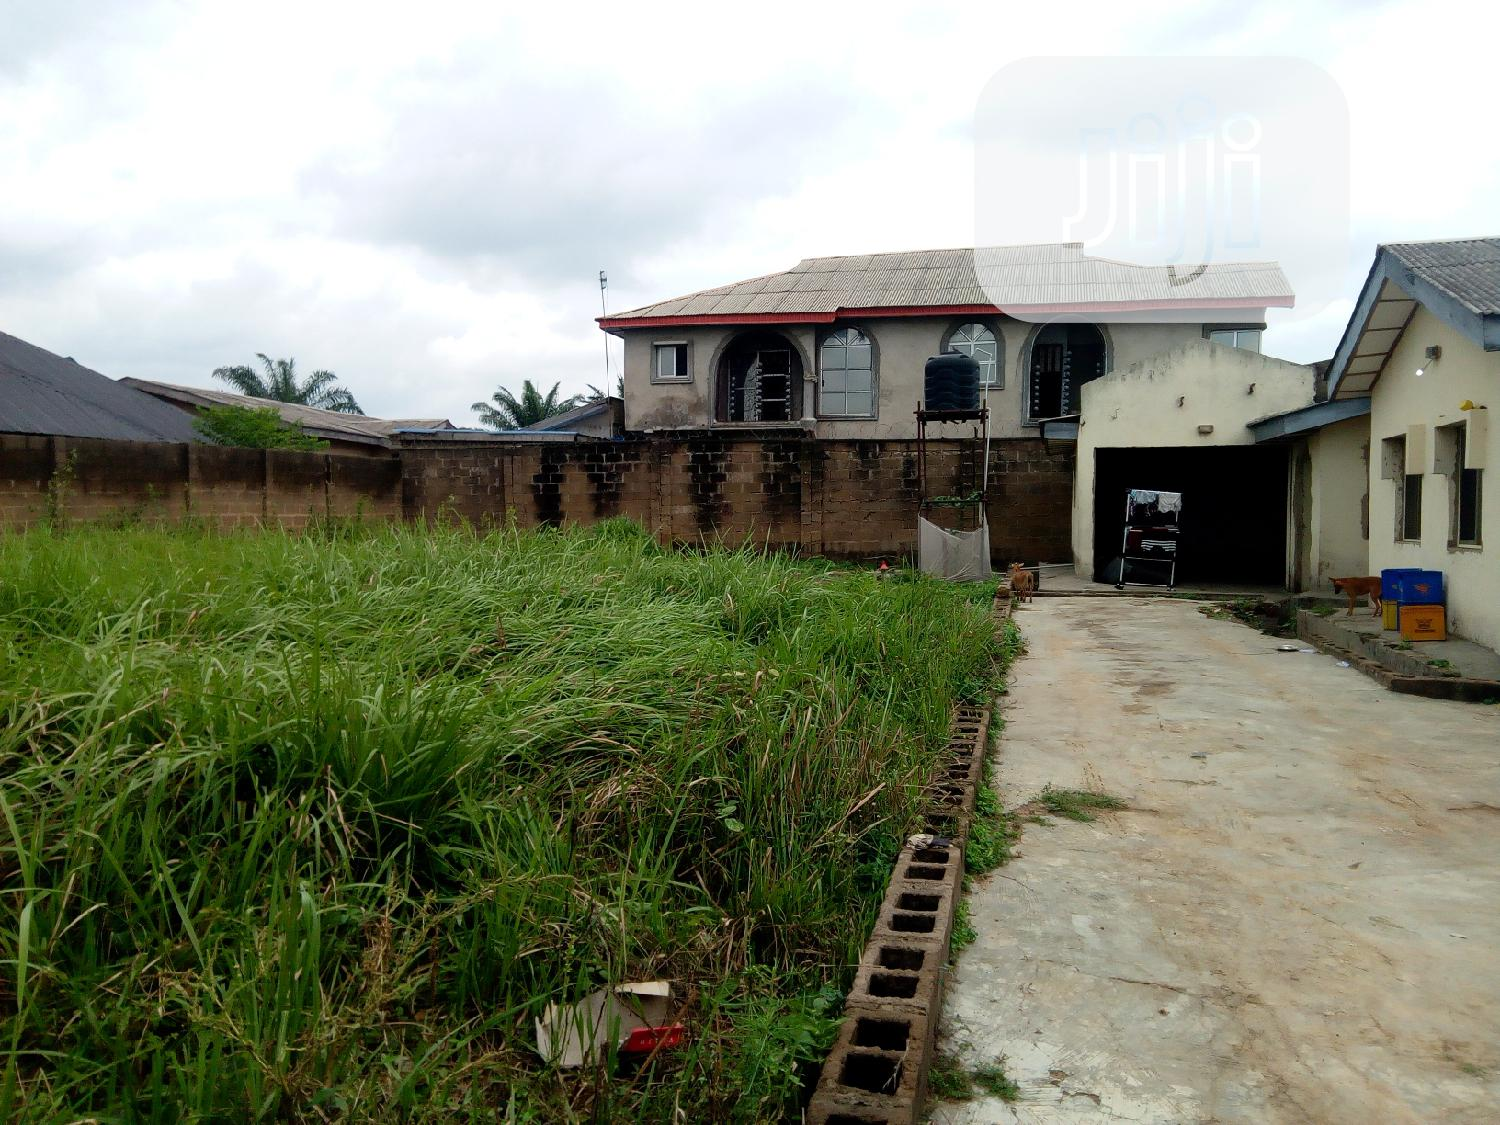 Twin Flat 3bedroom Eh Bungalow on 2 Standard Plots of Land | Houses & Apartments For Sale for sale in Alakia, Ibadan, Nigeria